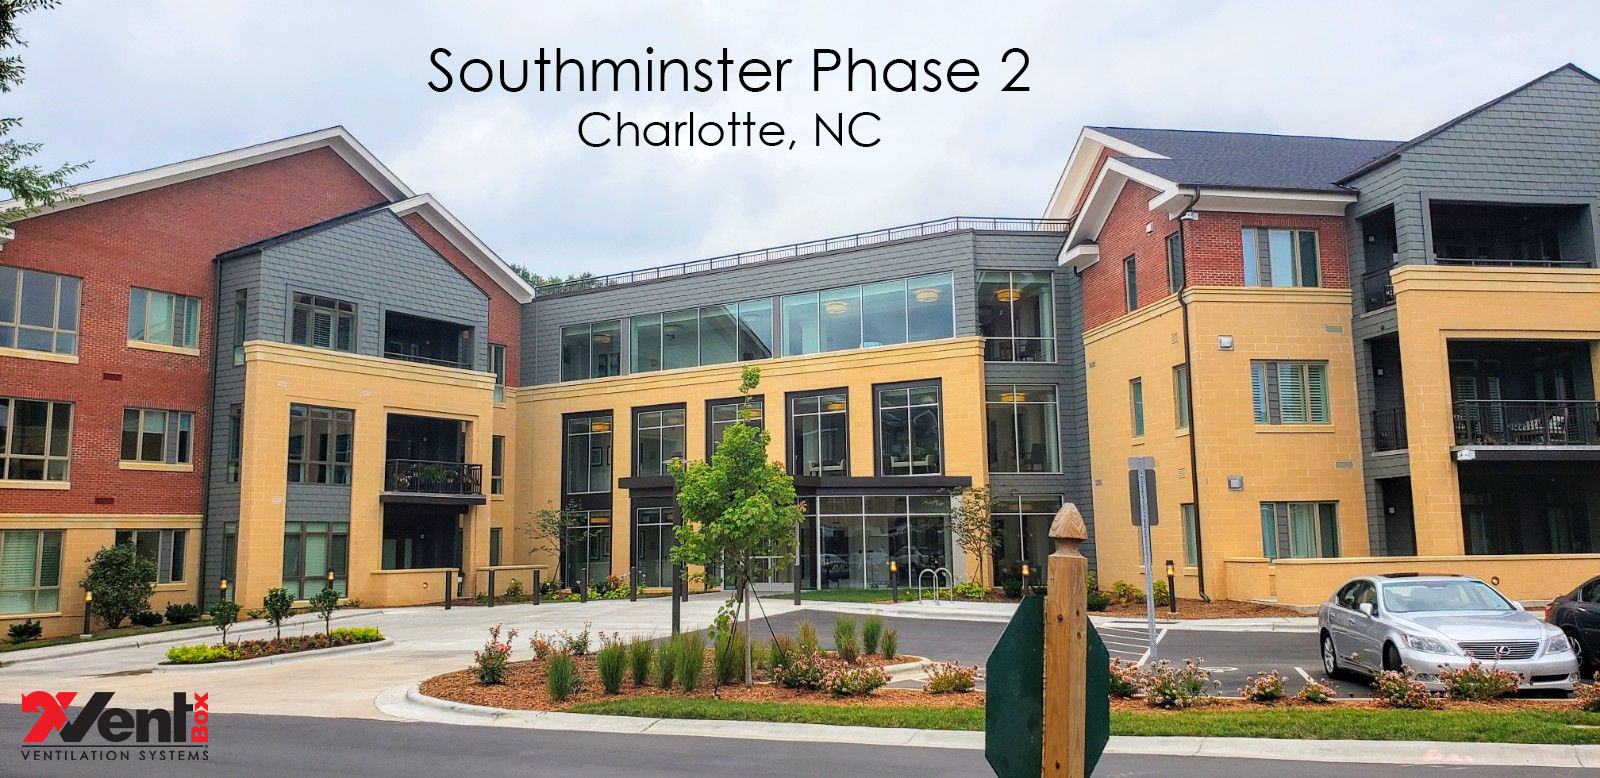 Southminster Phase 2